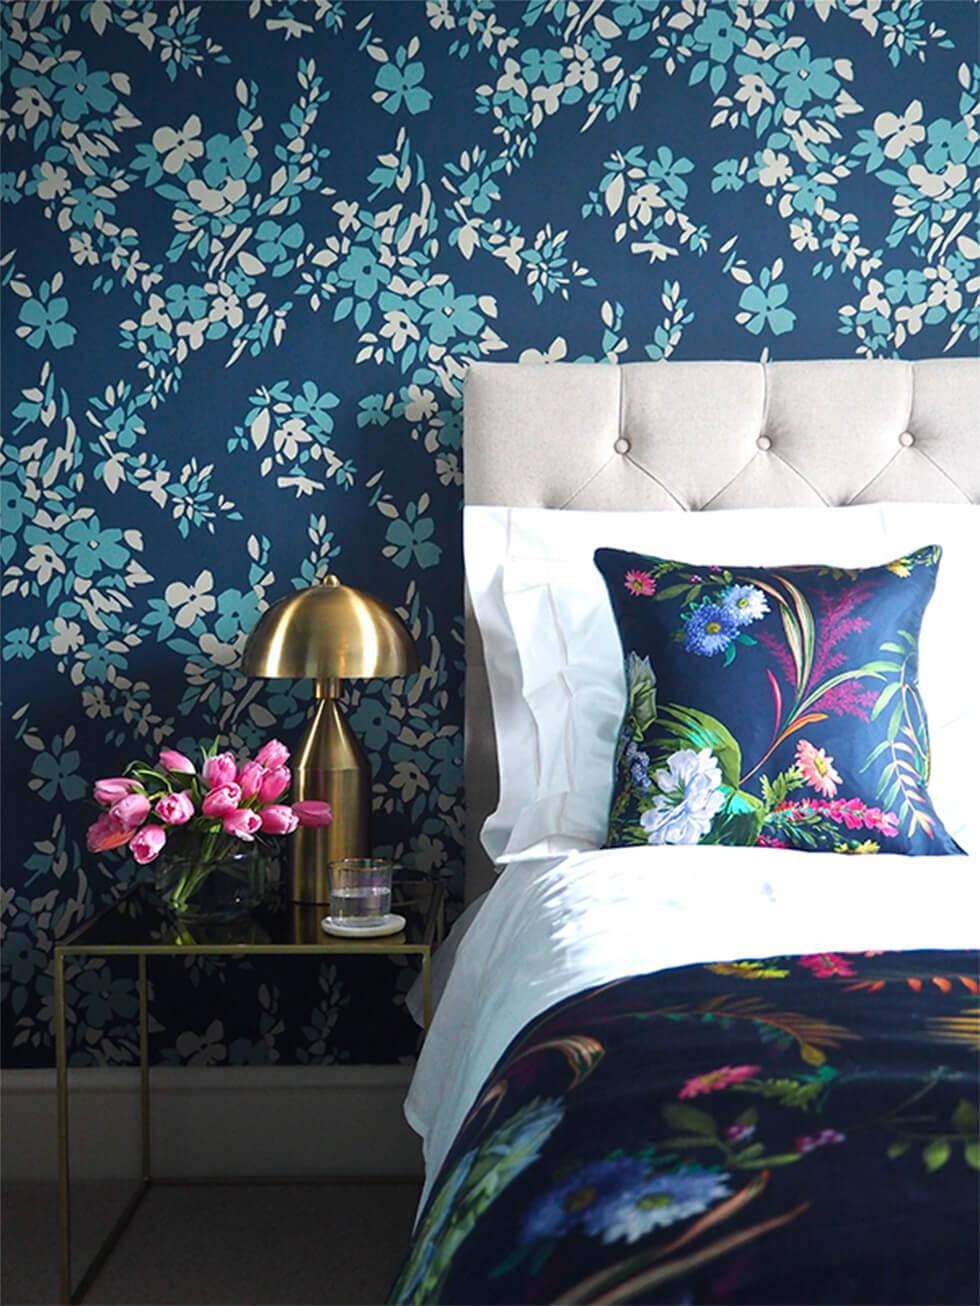 Maximalist blue bedroom with floral wallpaper and colourful bed linen